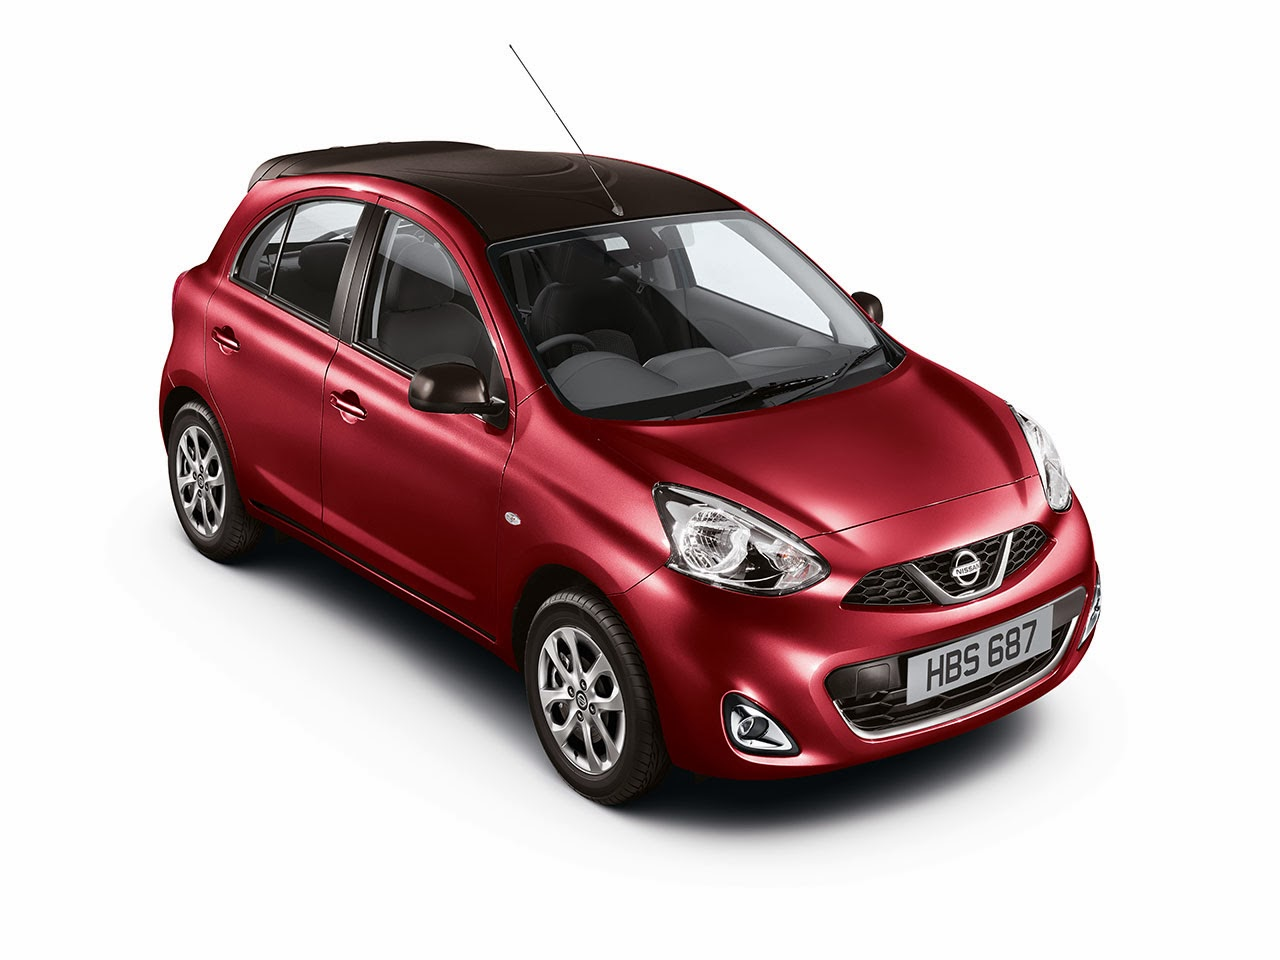 Nissan launches the limited edition new Micra